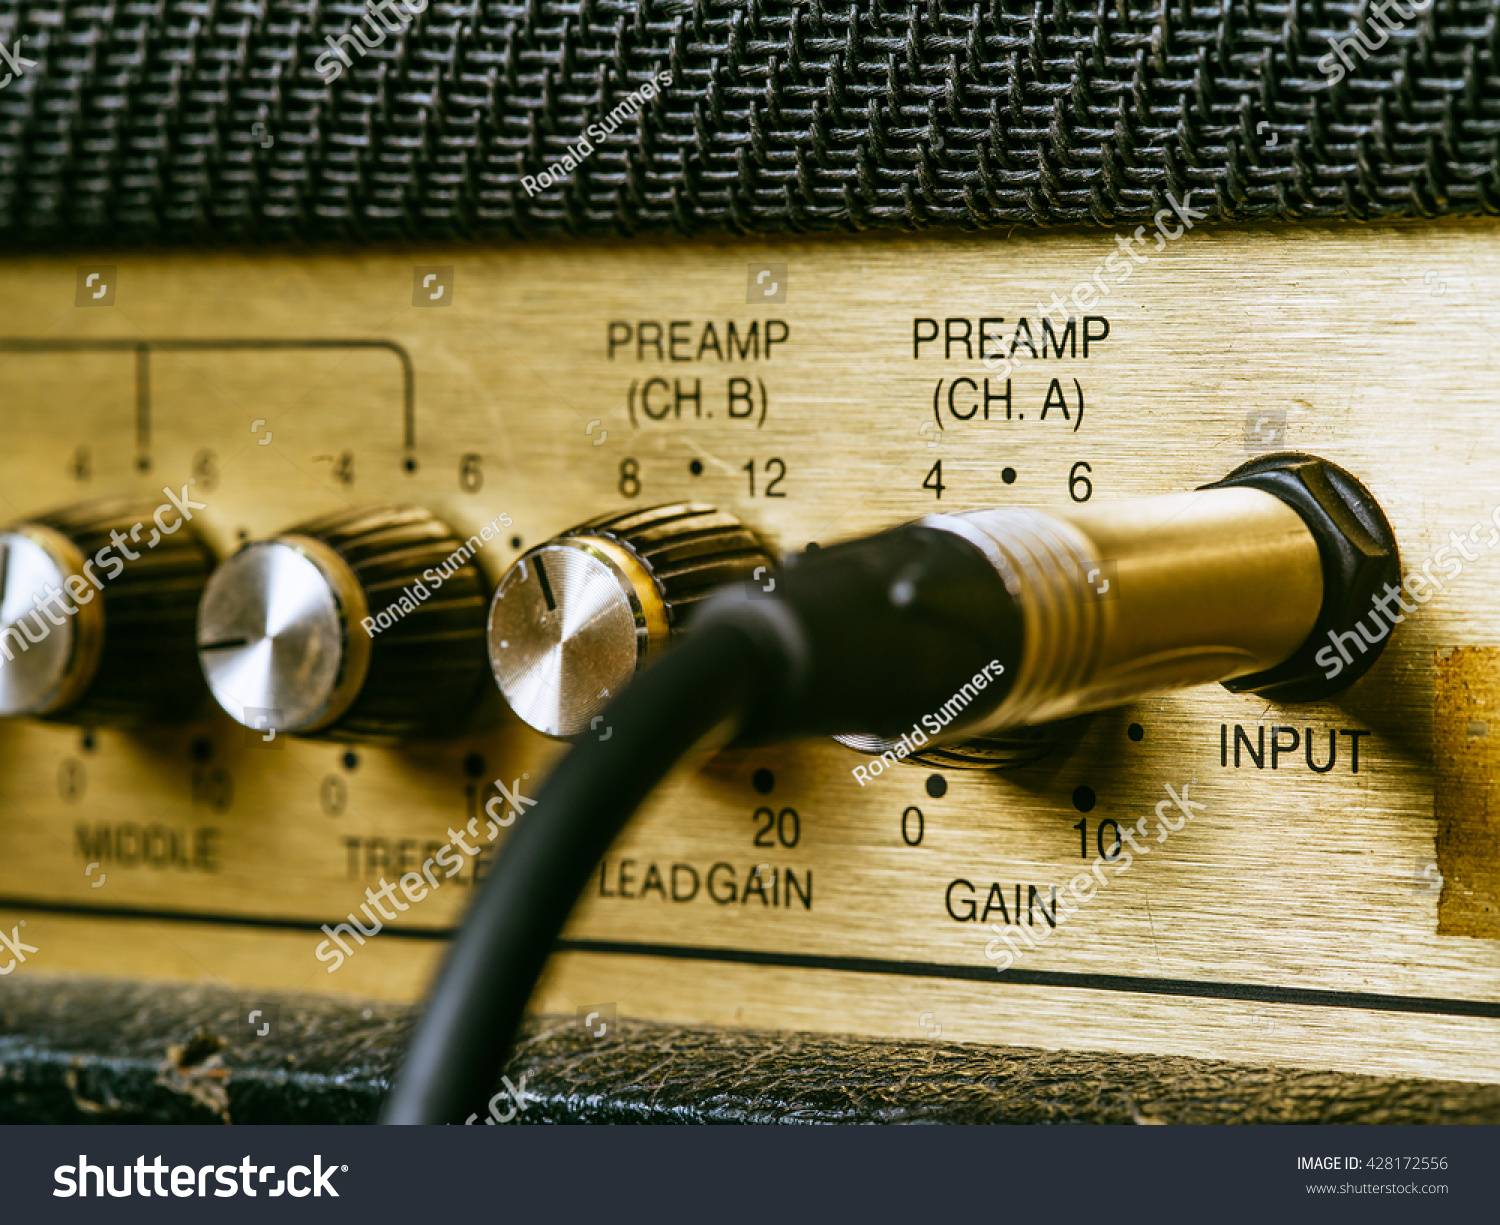 Macro Photo Vintage Electric Guitar Amplifier Stock Edit Now Mic Of A Showing The Knobs And Input Plug